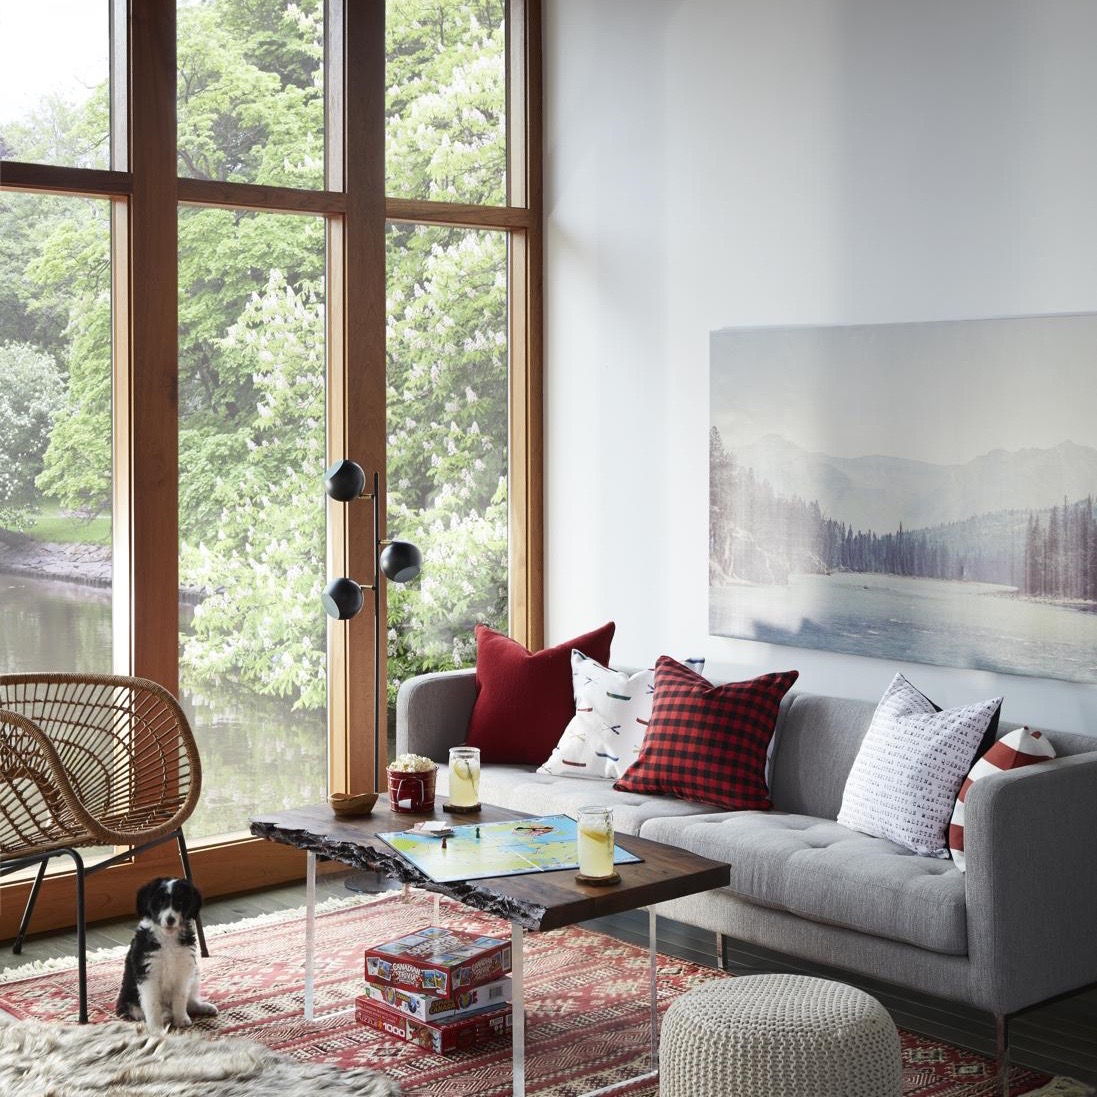 My favourites in this shot are the giant overscale photo canvas, the wicker chair (!!!), the red and black check cushion and of course THE PUPPY. I love my job extra extra when there's a puppy on set.